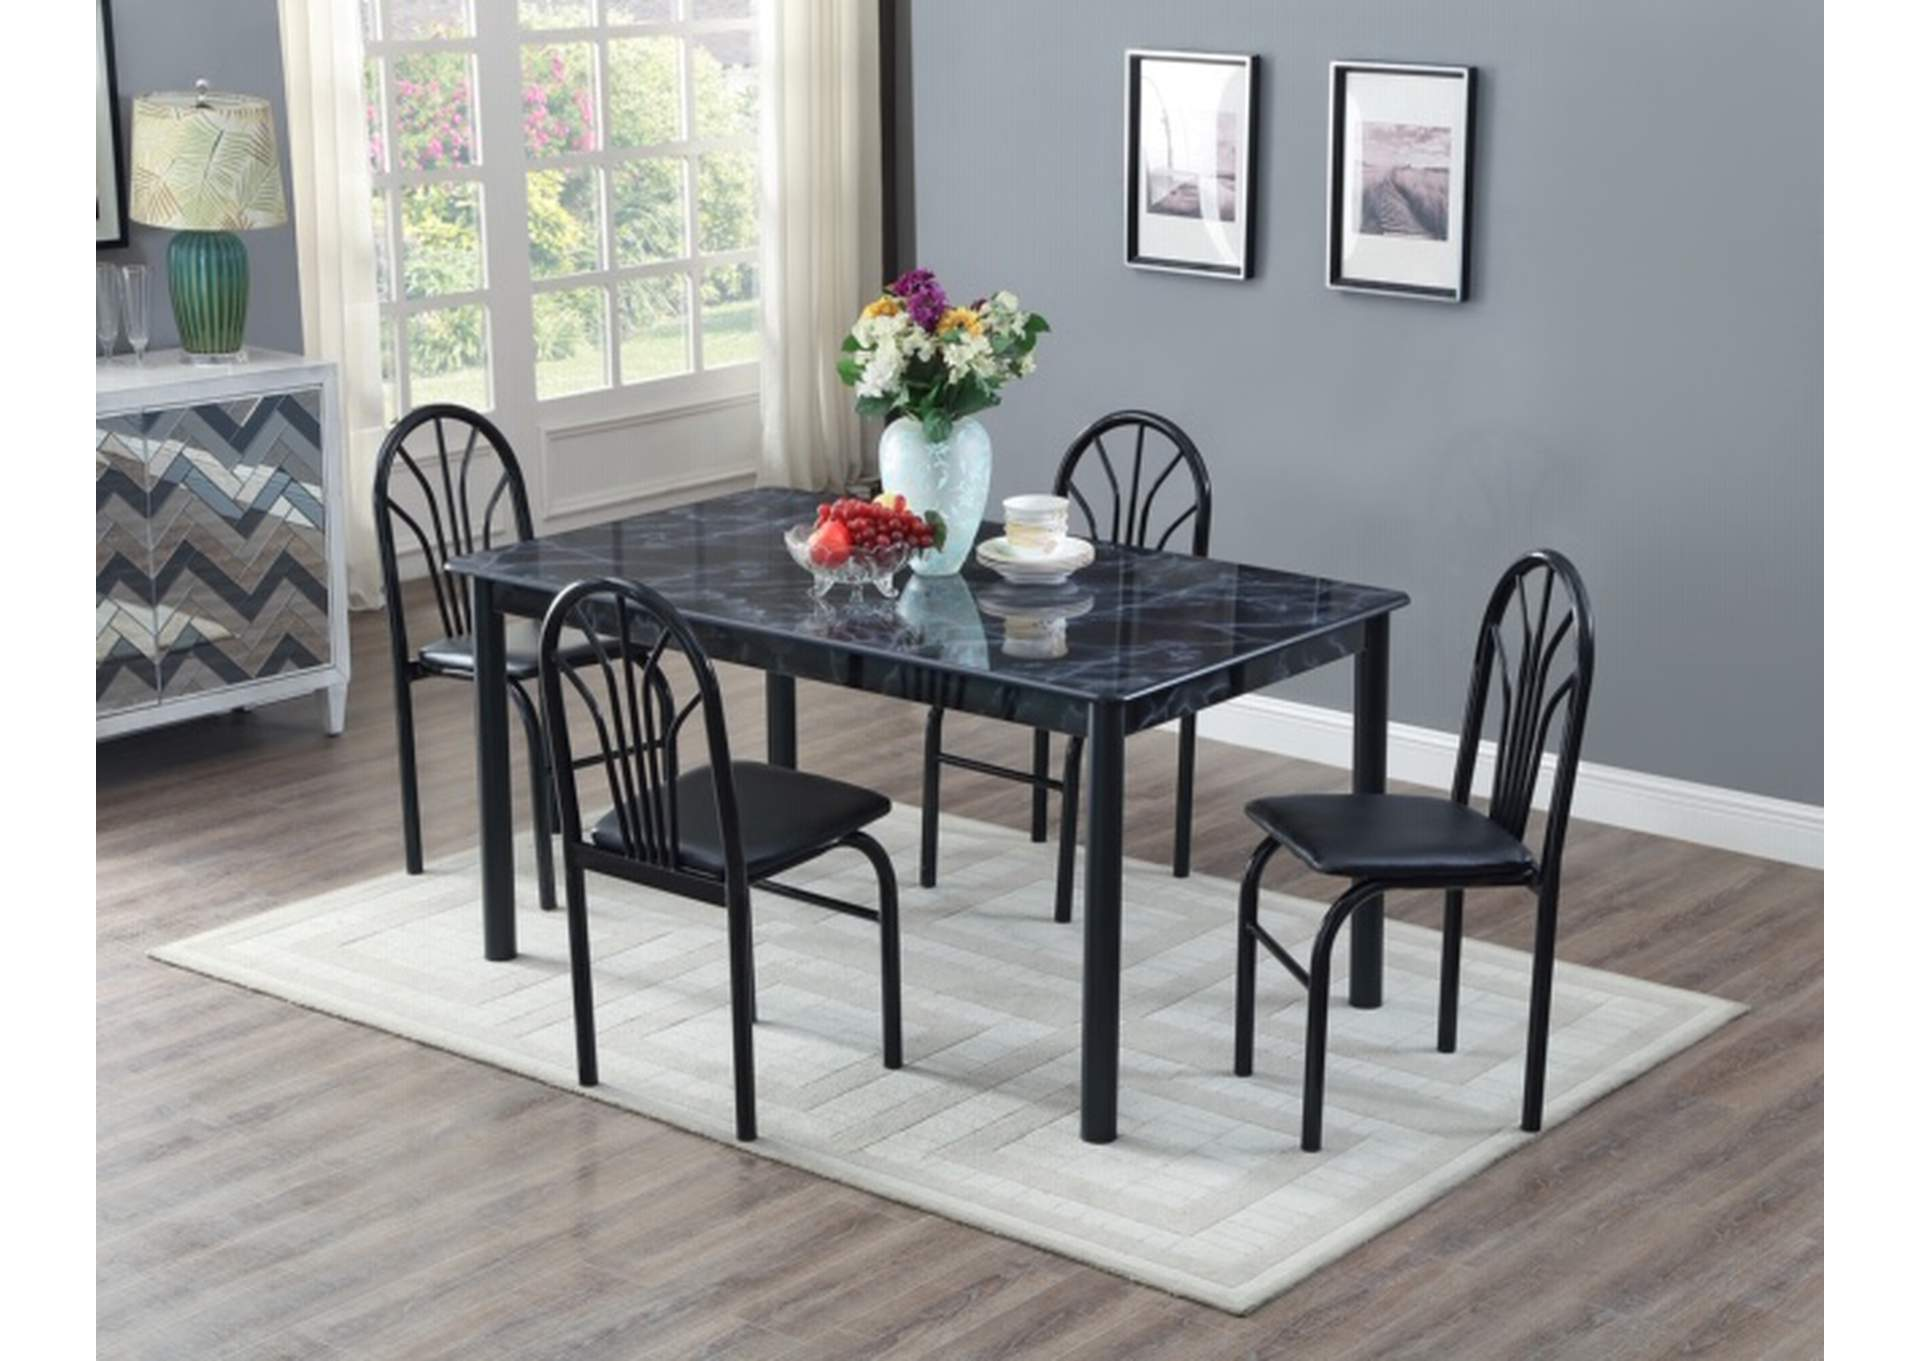 Black Marble Top Dinette W/ 4 Chairs,Global Trading